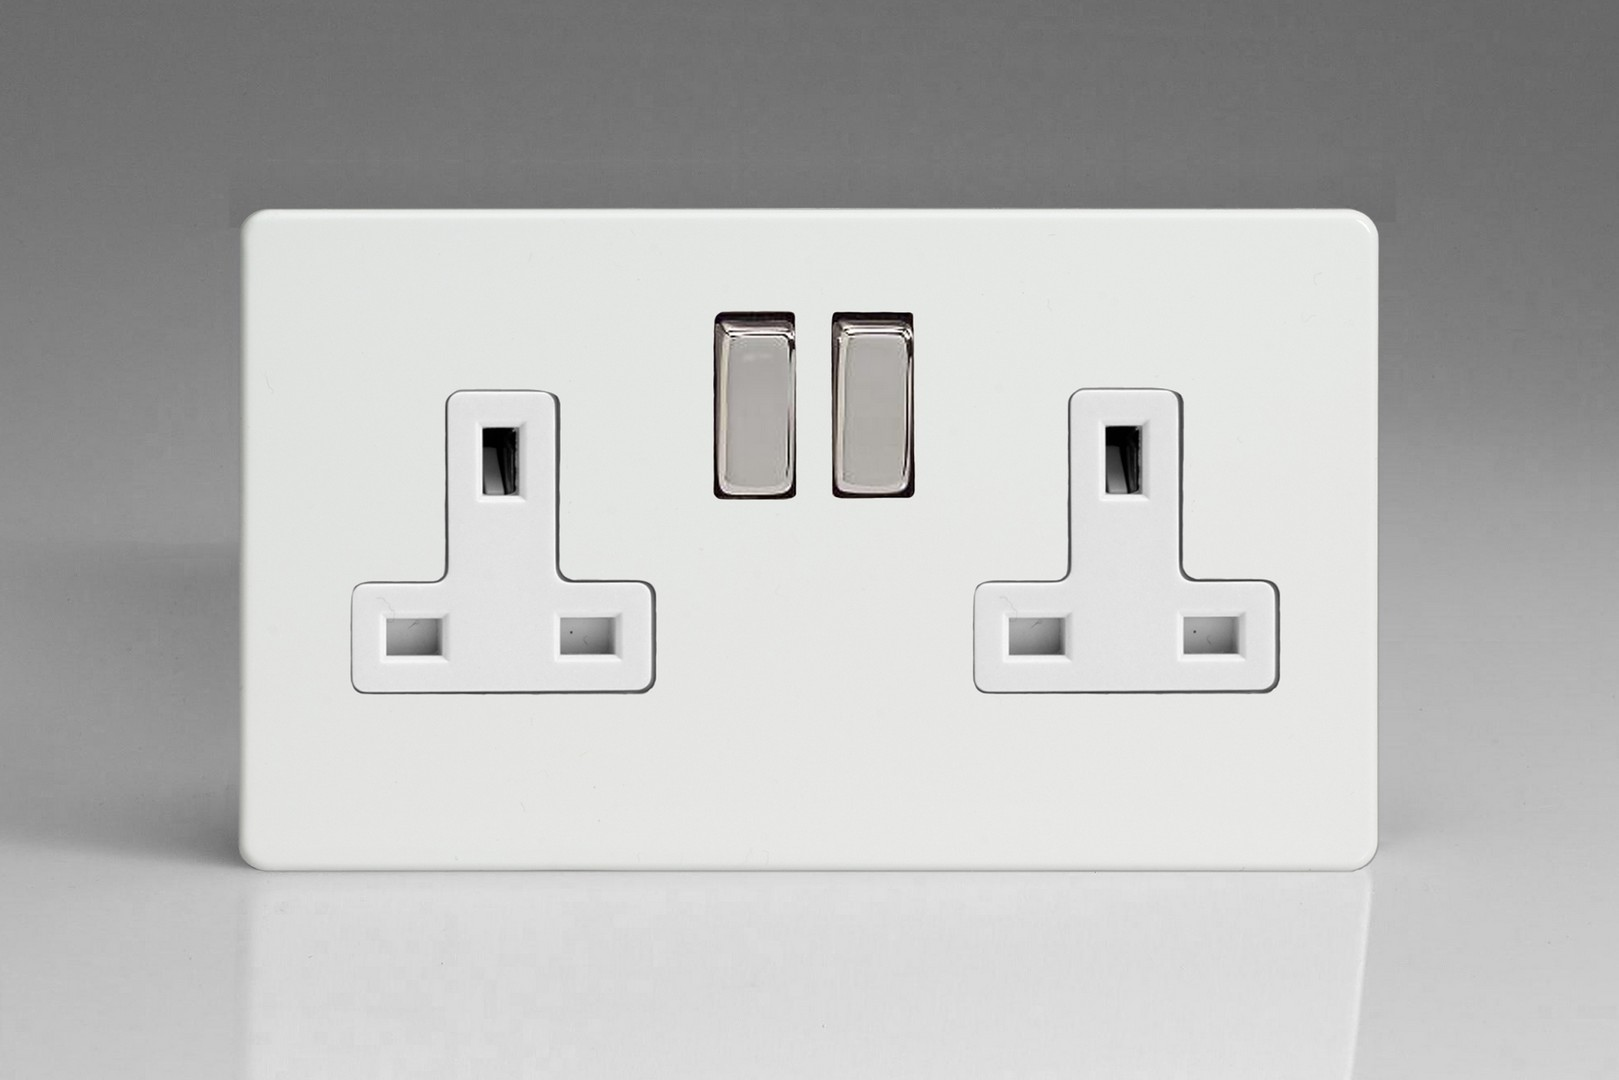 Socket Plate Custom Flat Plate Screwless Premium White 2Gang 13A Double Pole Switched Inspiration Design